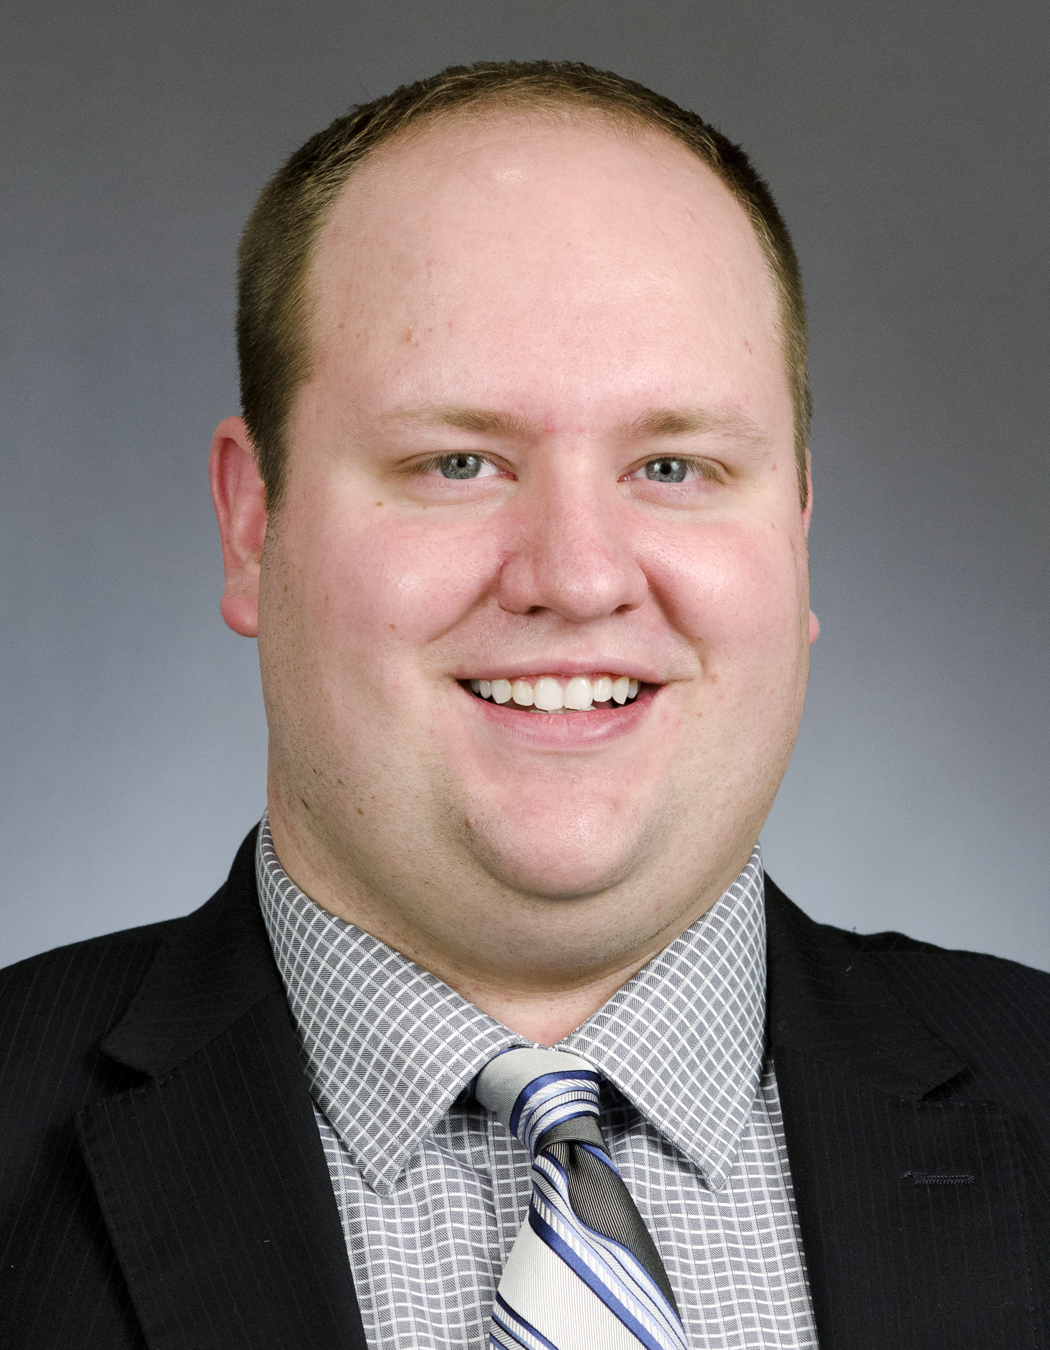 Representative Joe Schomacker